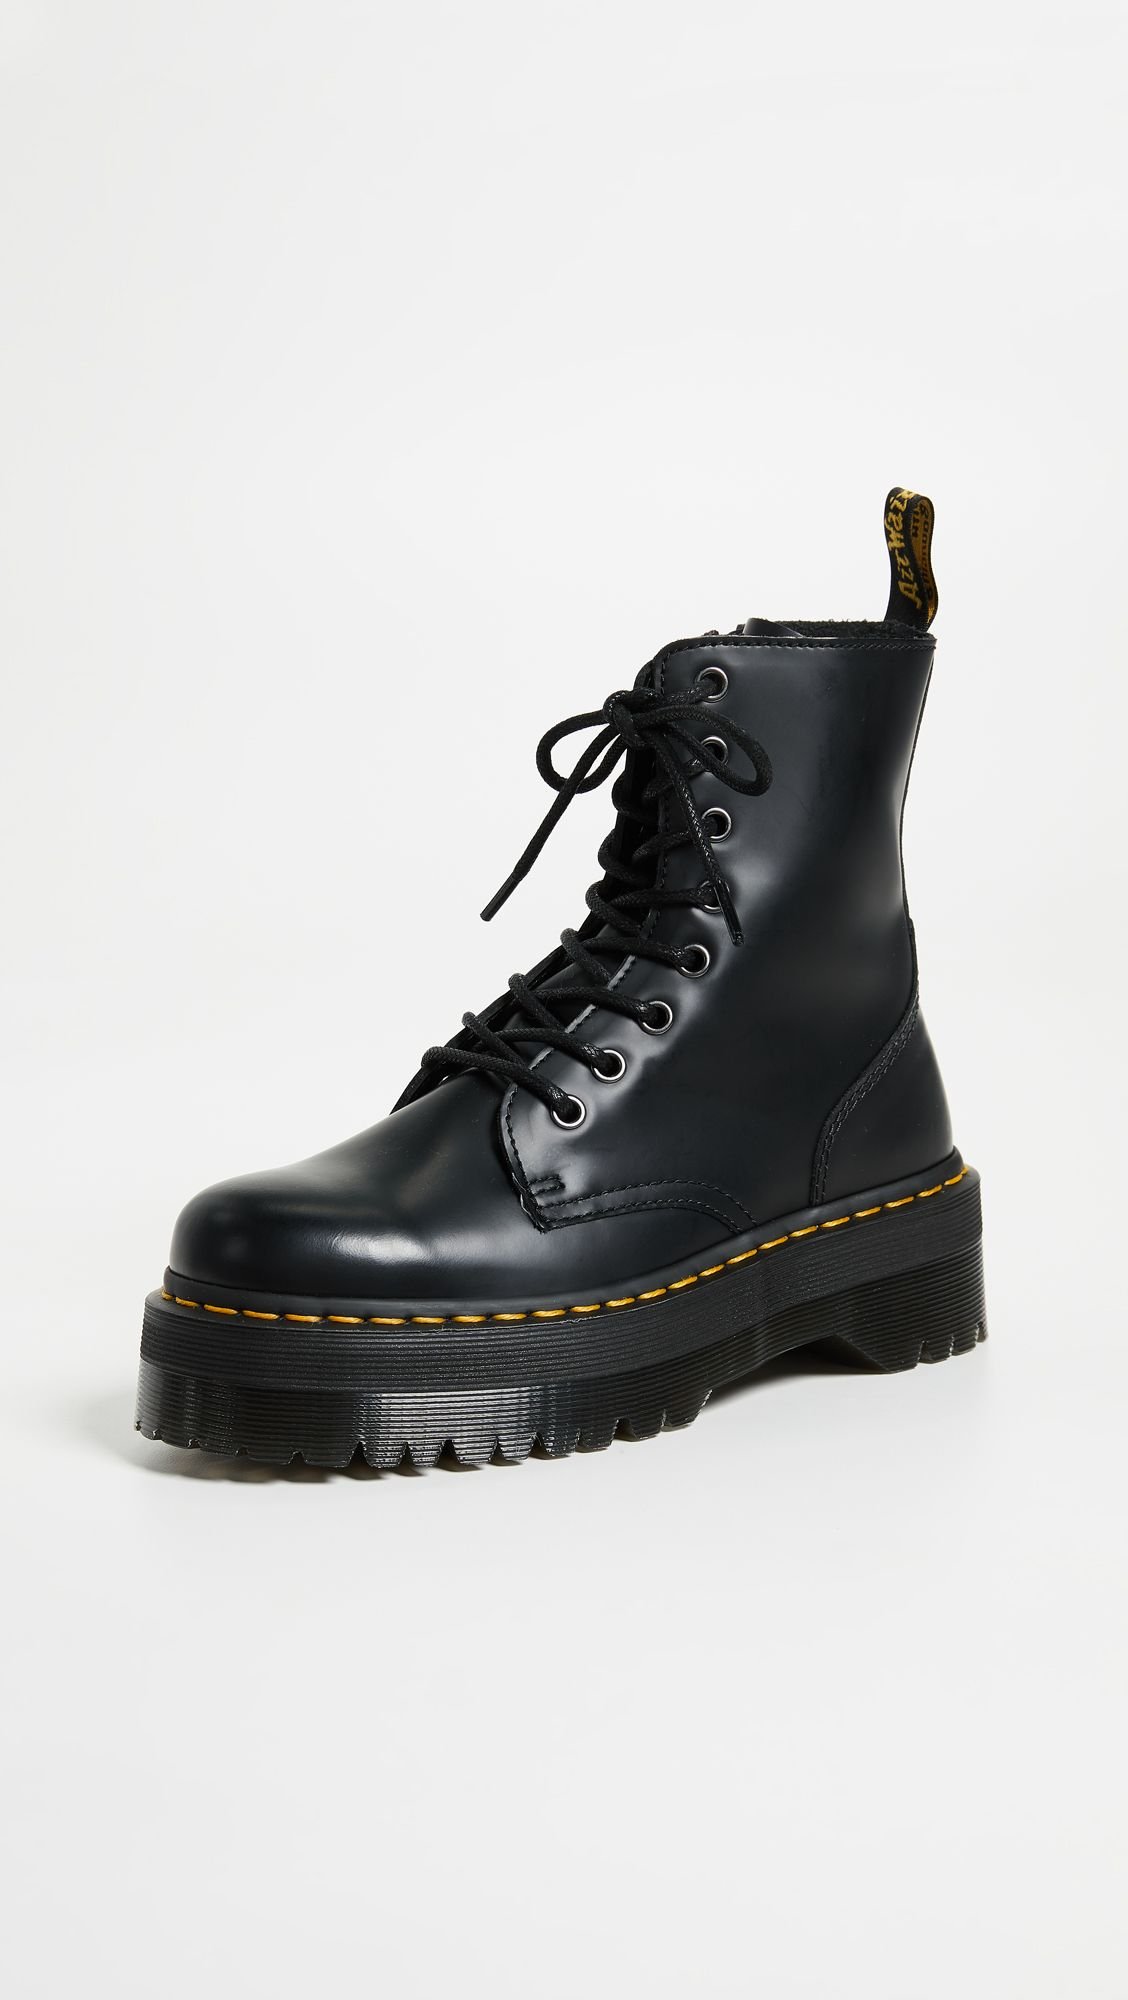 Jadon 8 Eye Boots by Dr. Martens, available on shopbop.com for $170 Bella Hadid Shoes Exact Product